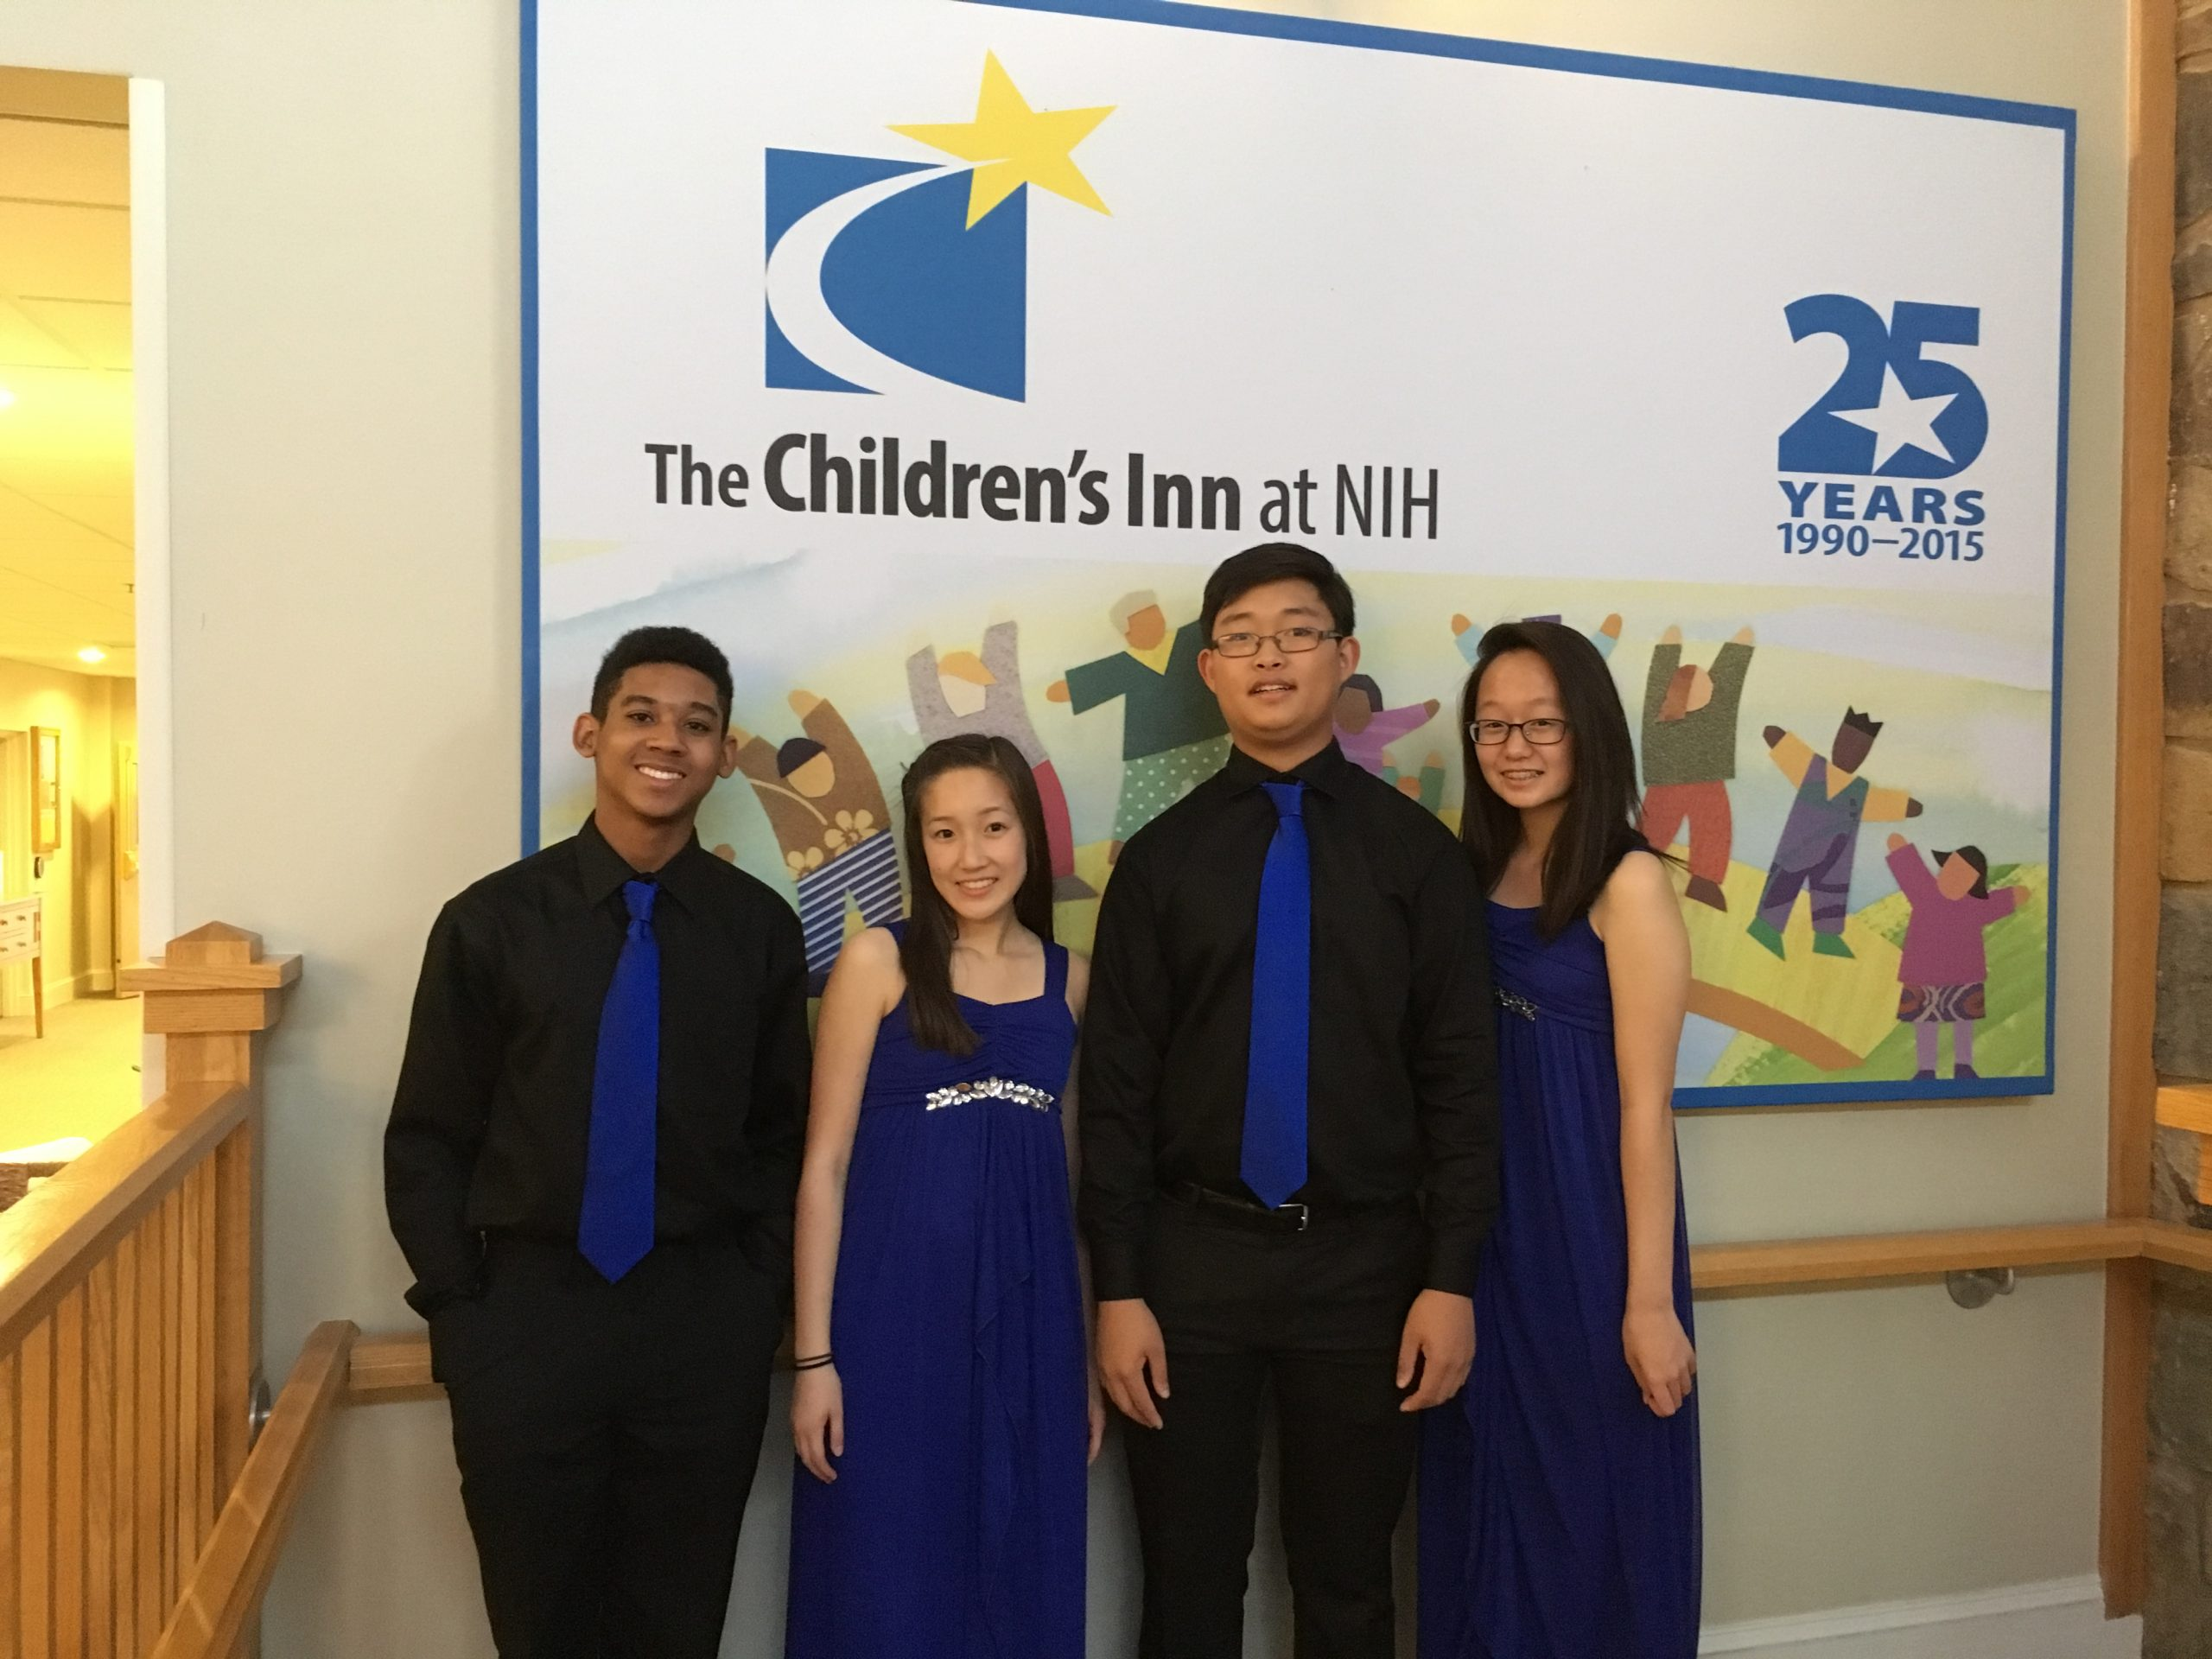 Pictured here are members Spencer Tate, 17, Natalie Hsieh, 15, Phillip Lee, 15, and Katherine Kim, 15.